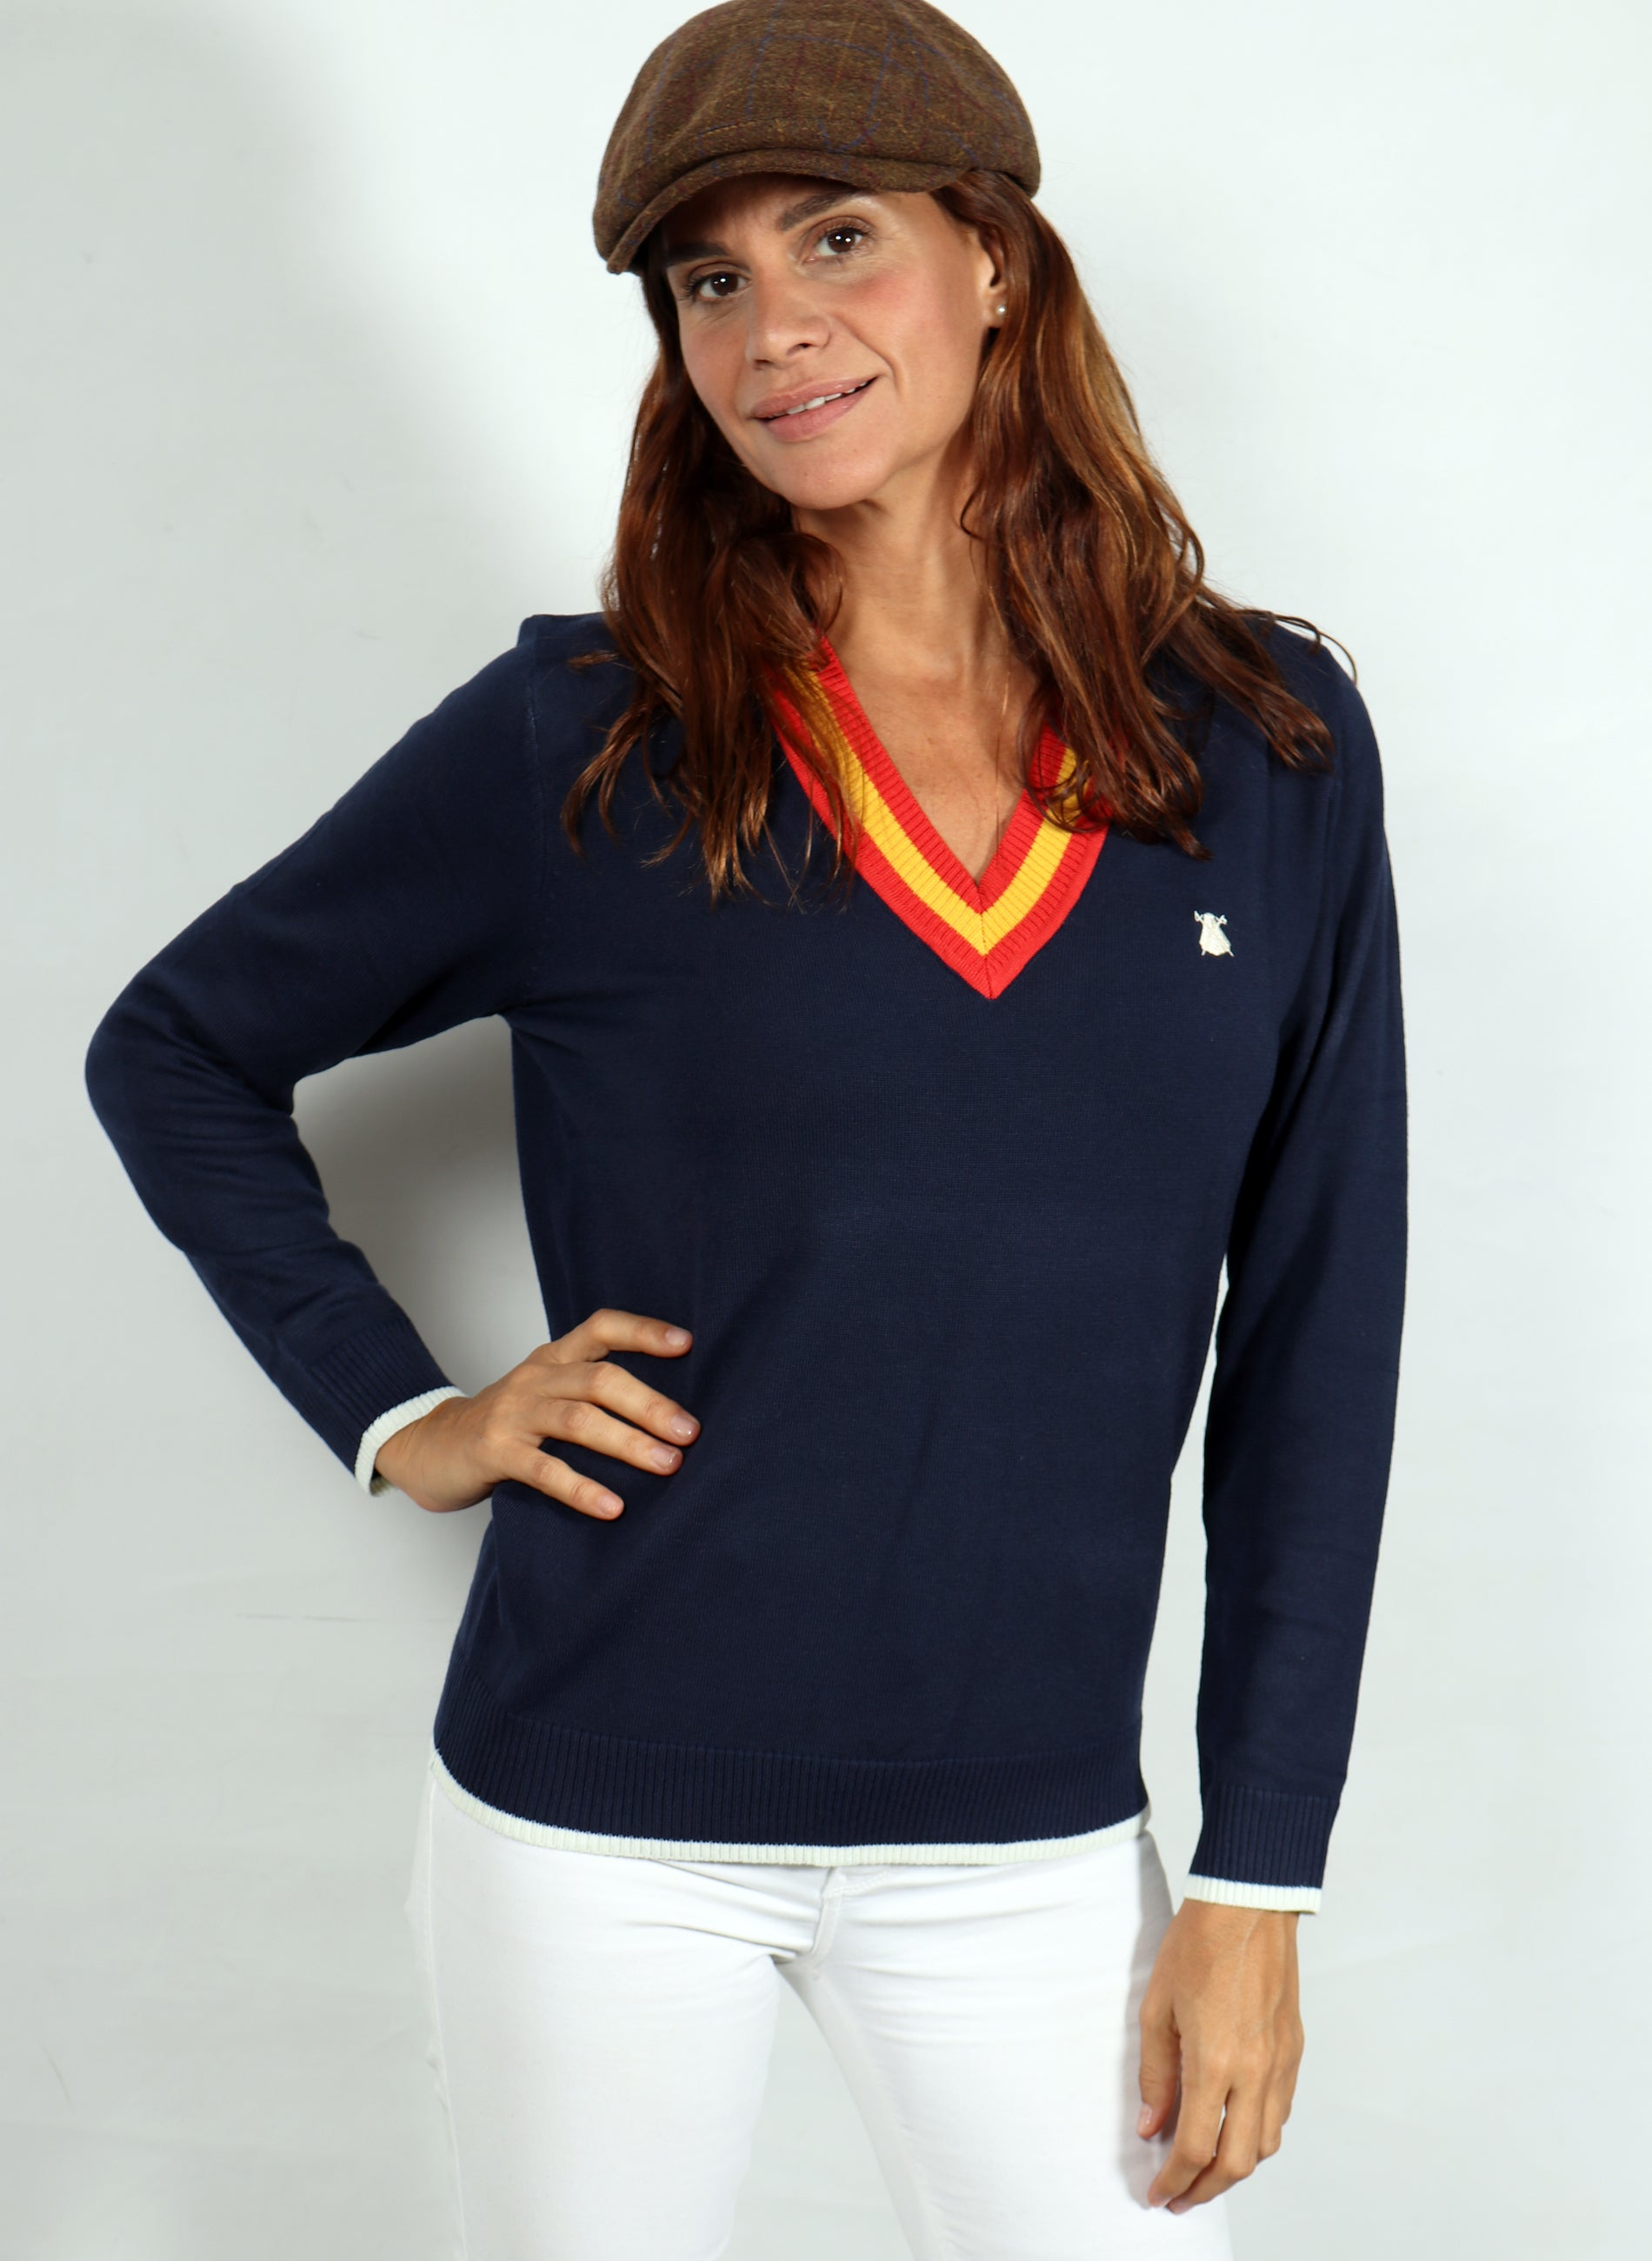 V-Neck Sweater Woman Navy Blue Spain